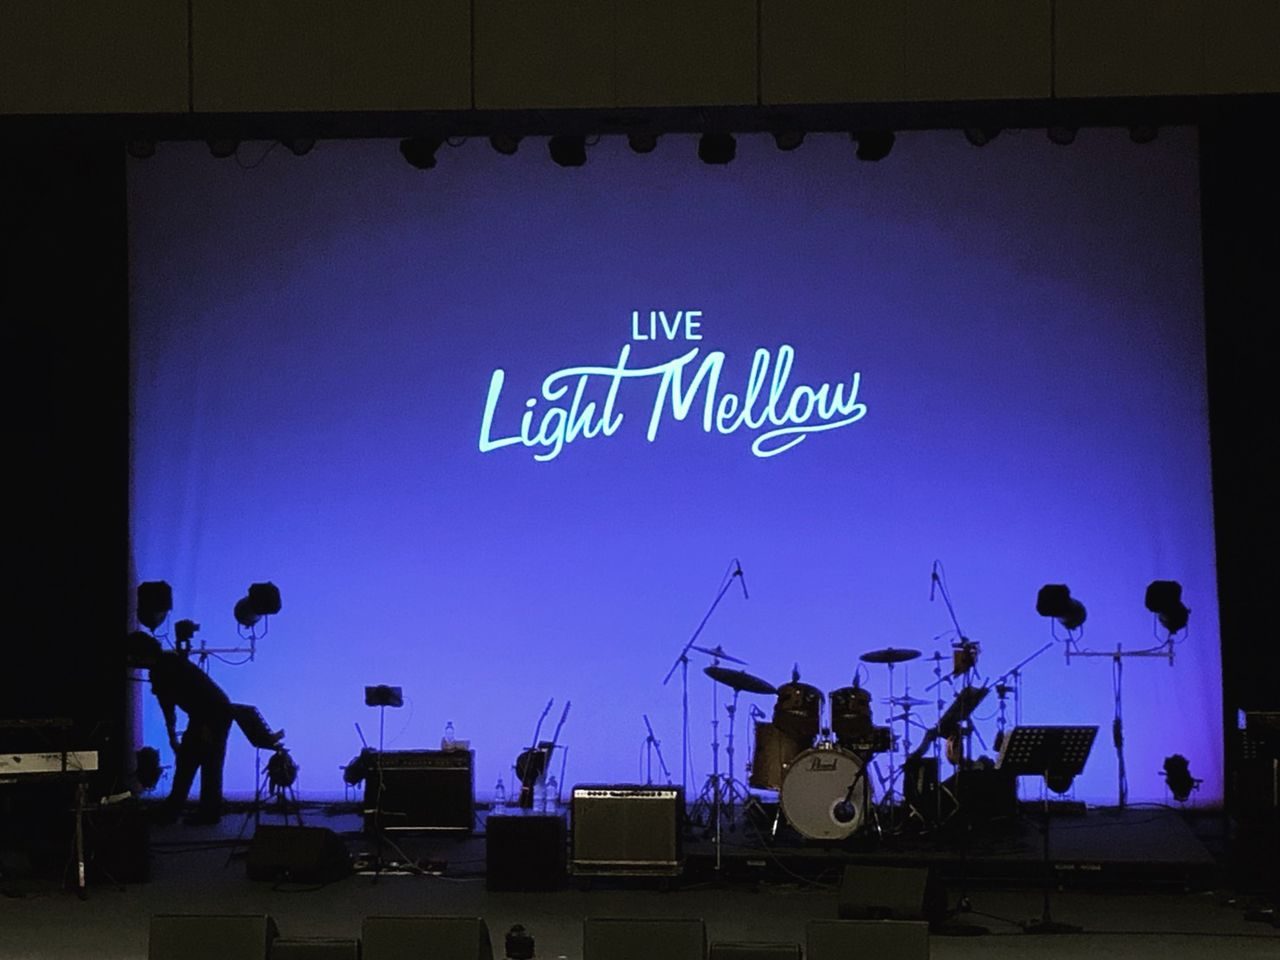 live light mellow stage